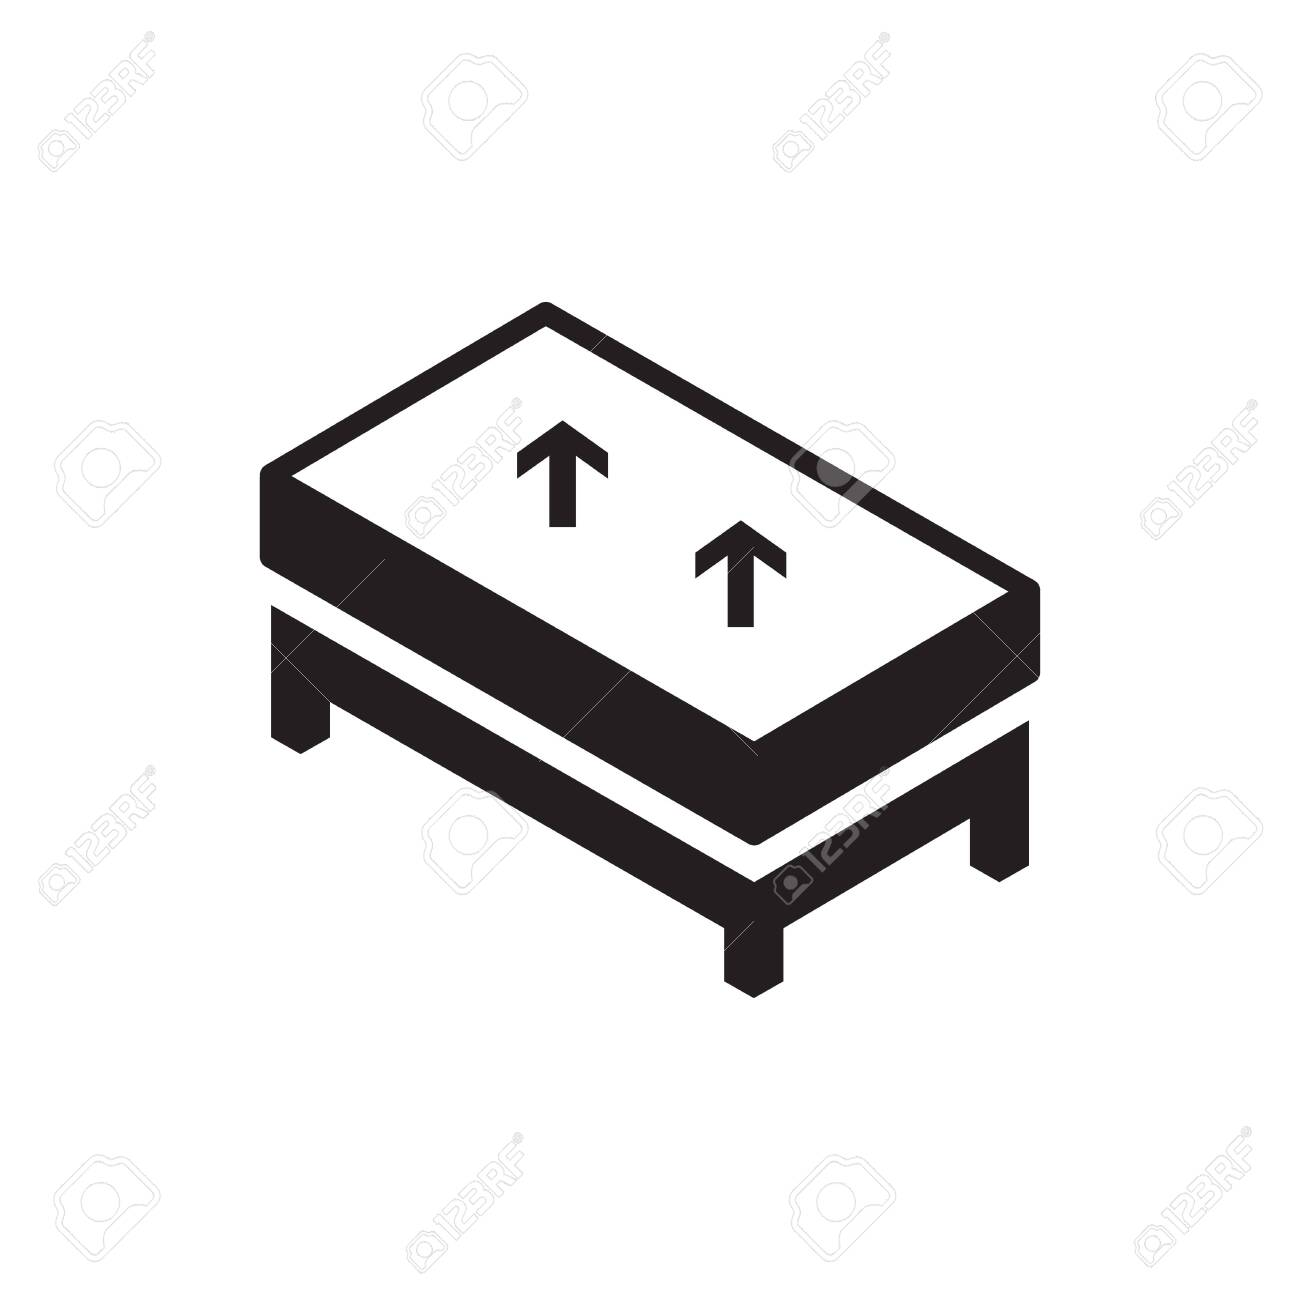 Mattress Vector Icon Logo Design Royalty Free Cliparts Vectors And Stock Illustration Image 154782321